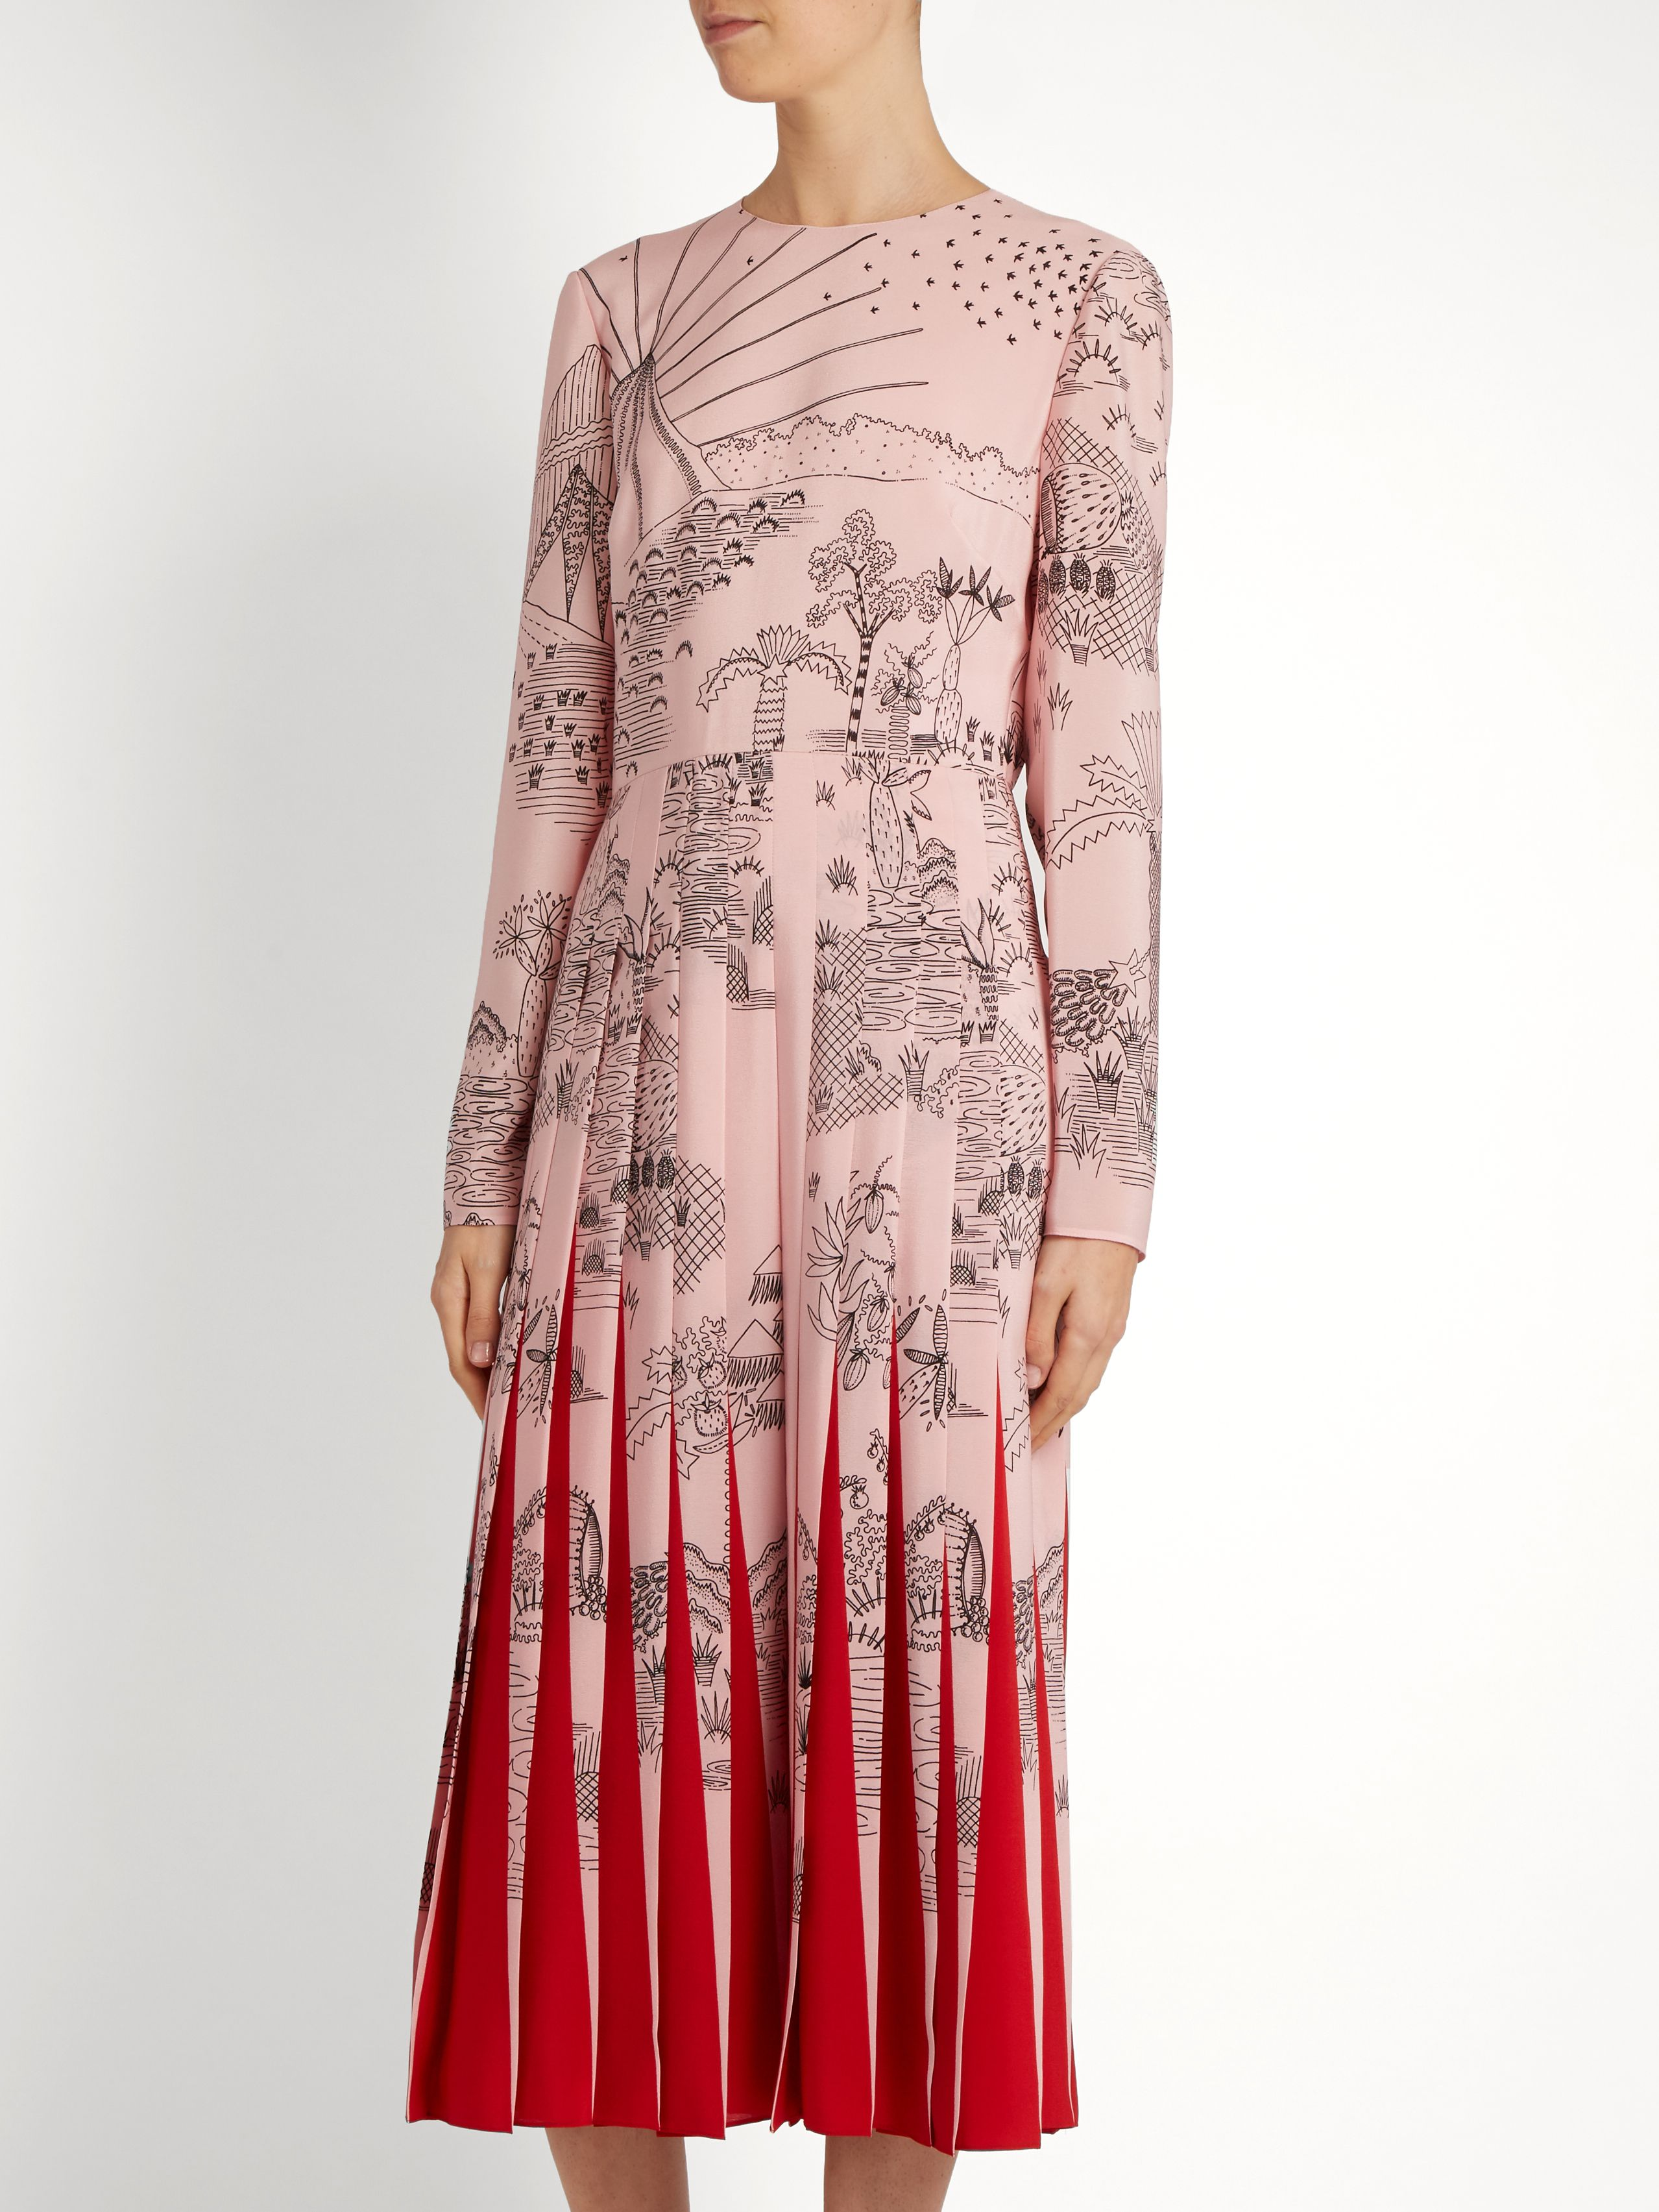 Garden Segments Print Silk Dress Valentino Matchesfashion Com